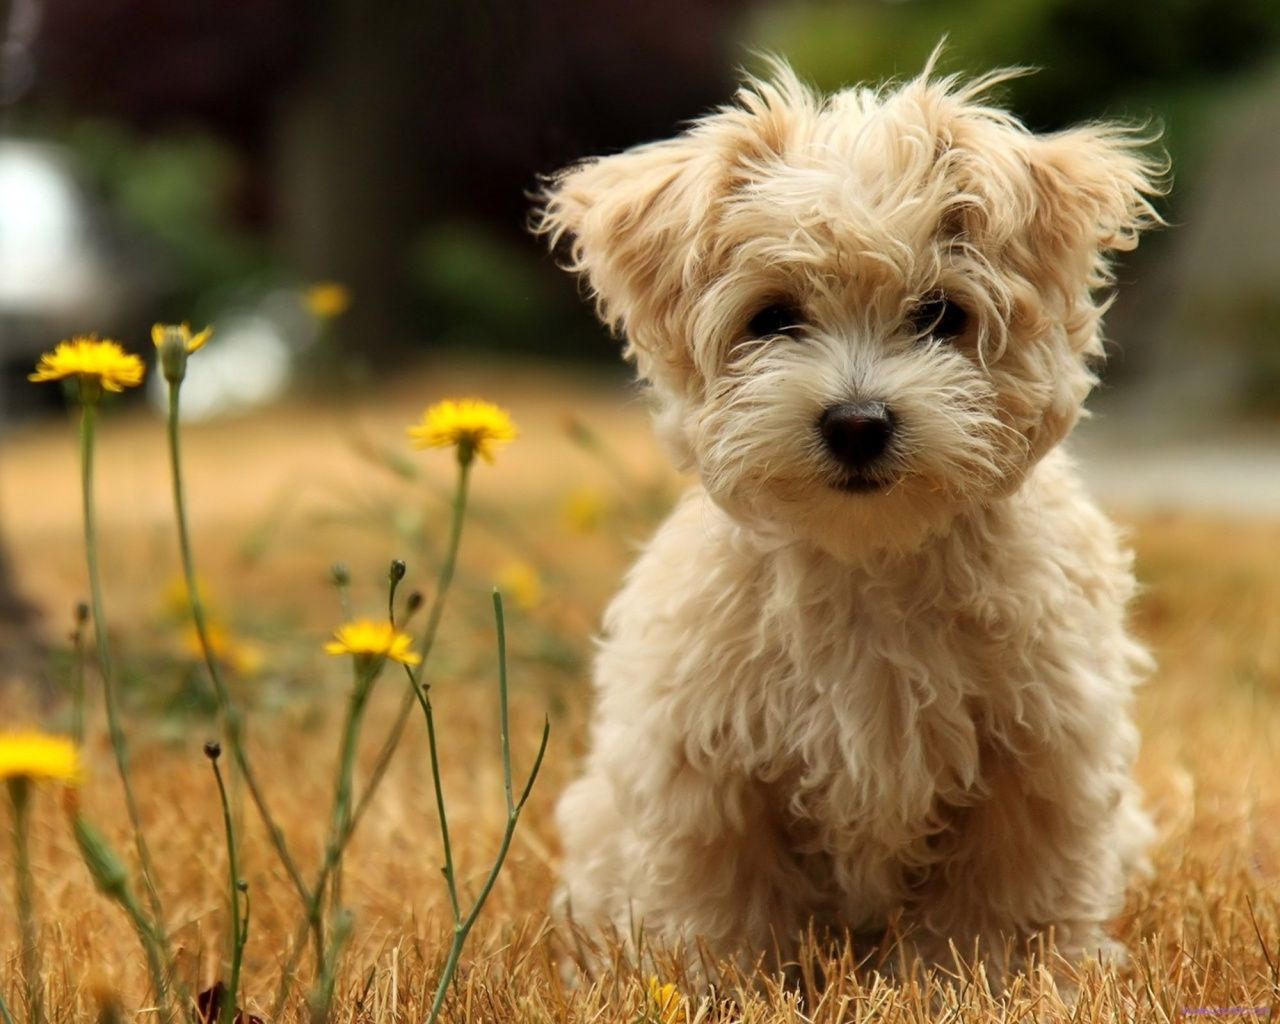 Pomeranian Yorkie Mix Puppies Picture Dog Breeders Guide In 2020 Bear Dog Breed Cute Puppy Wallpaper Teddy Bear Dog